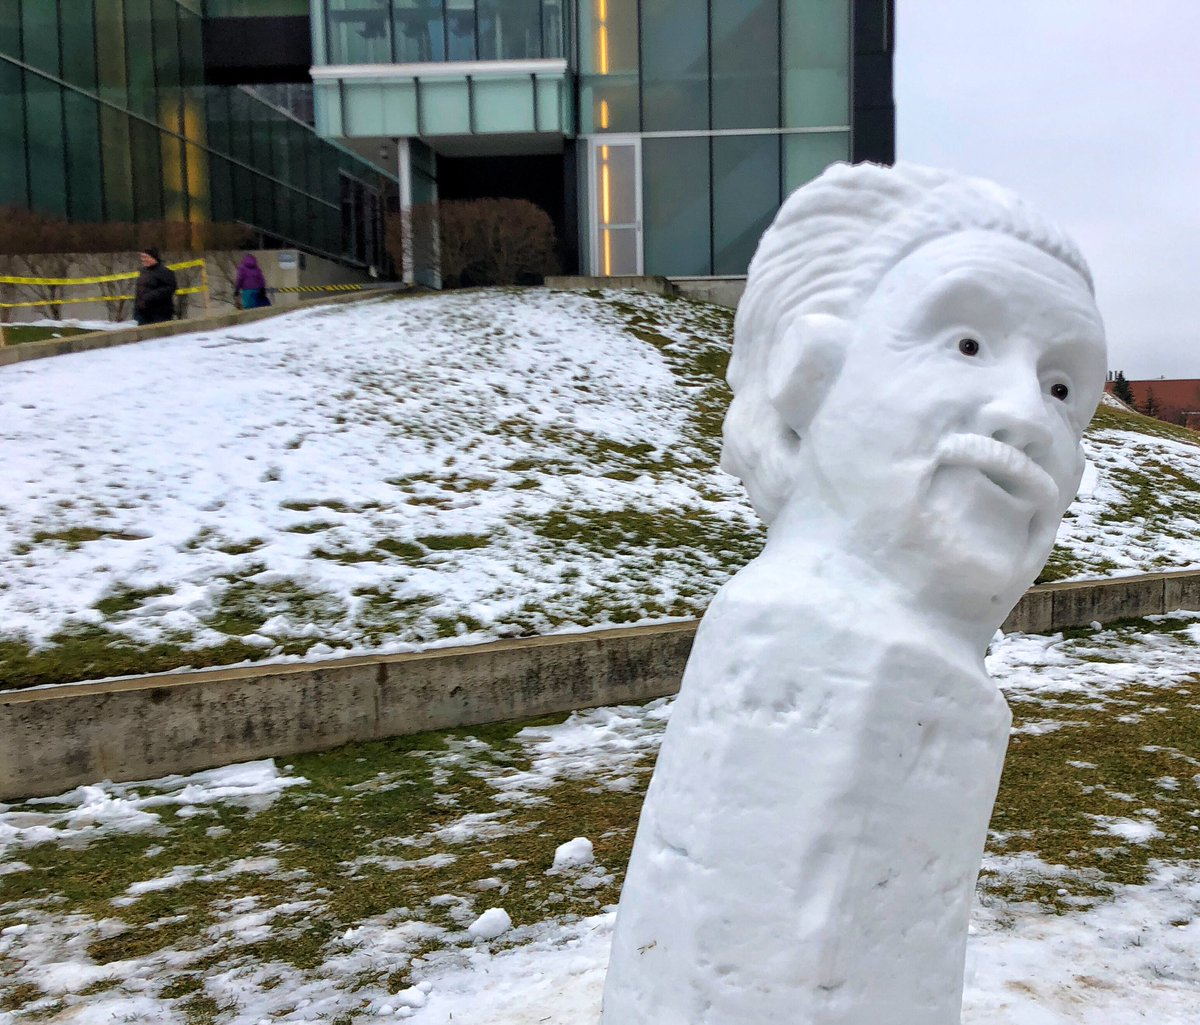 Albert Einstein says his hair has been improved somewhat. He continues to lean. @CreateWaterloo @Perimeter